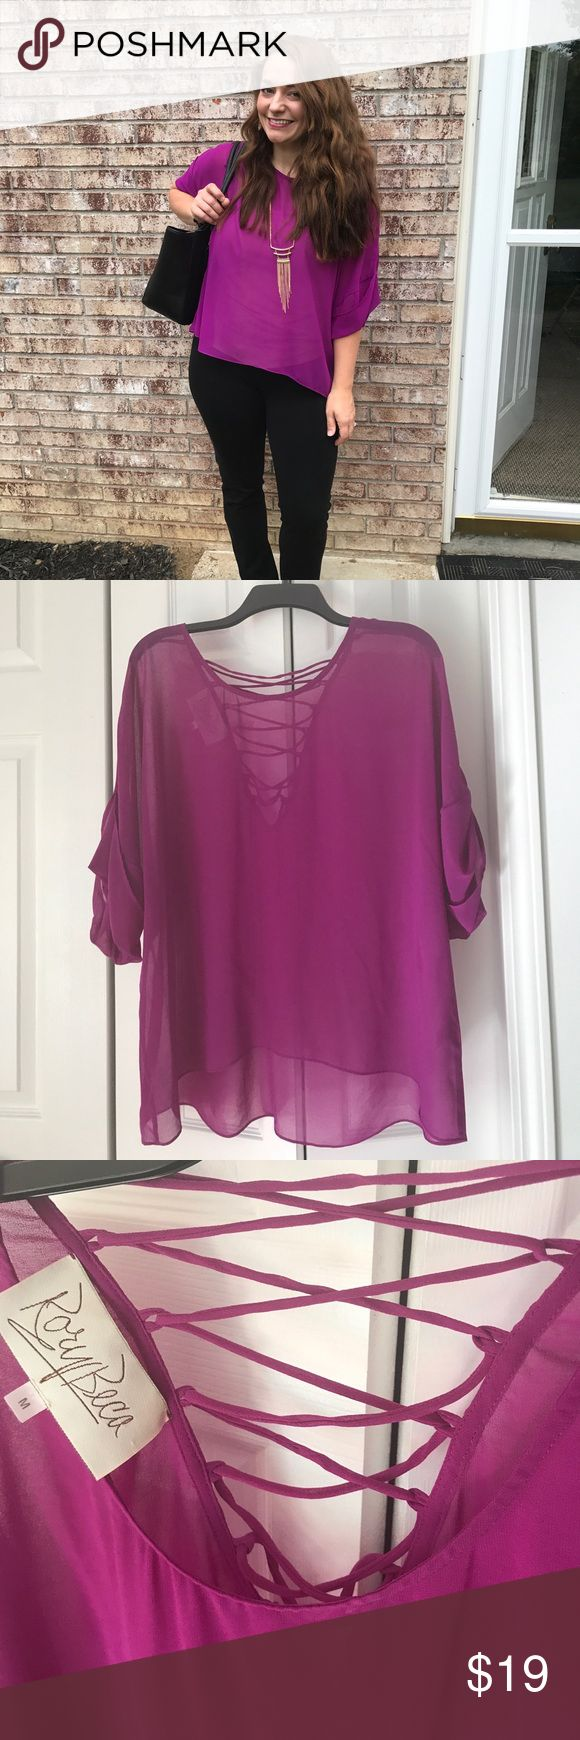 Rory Beca M cross-cross back Fuchsia Blouse Boutique Fuchsia flow with criss-cross tie up back. Fits very loosely and more like a size Large. I've worn with black skinny jeans and black pencil skirt. It's a stunning top. Rory Beca Tops Blouses